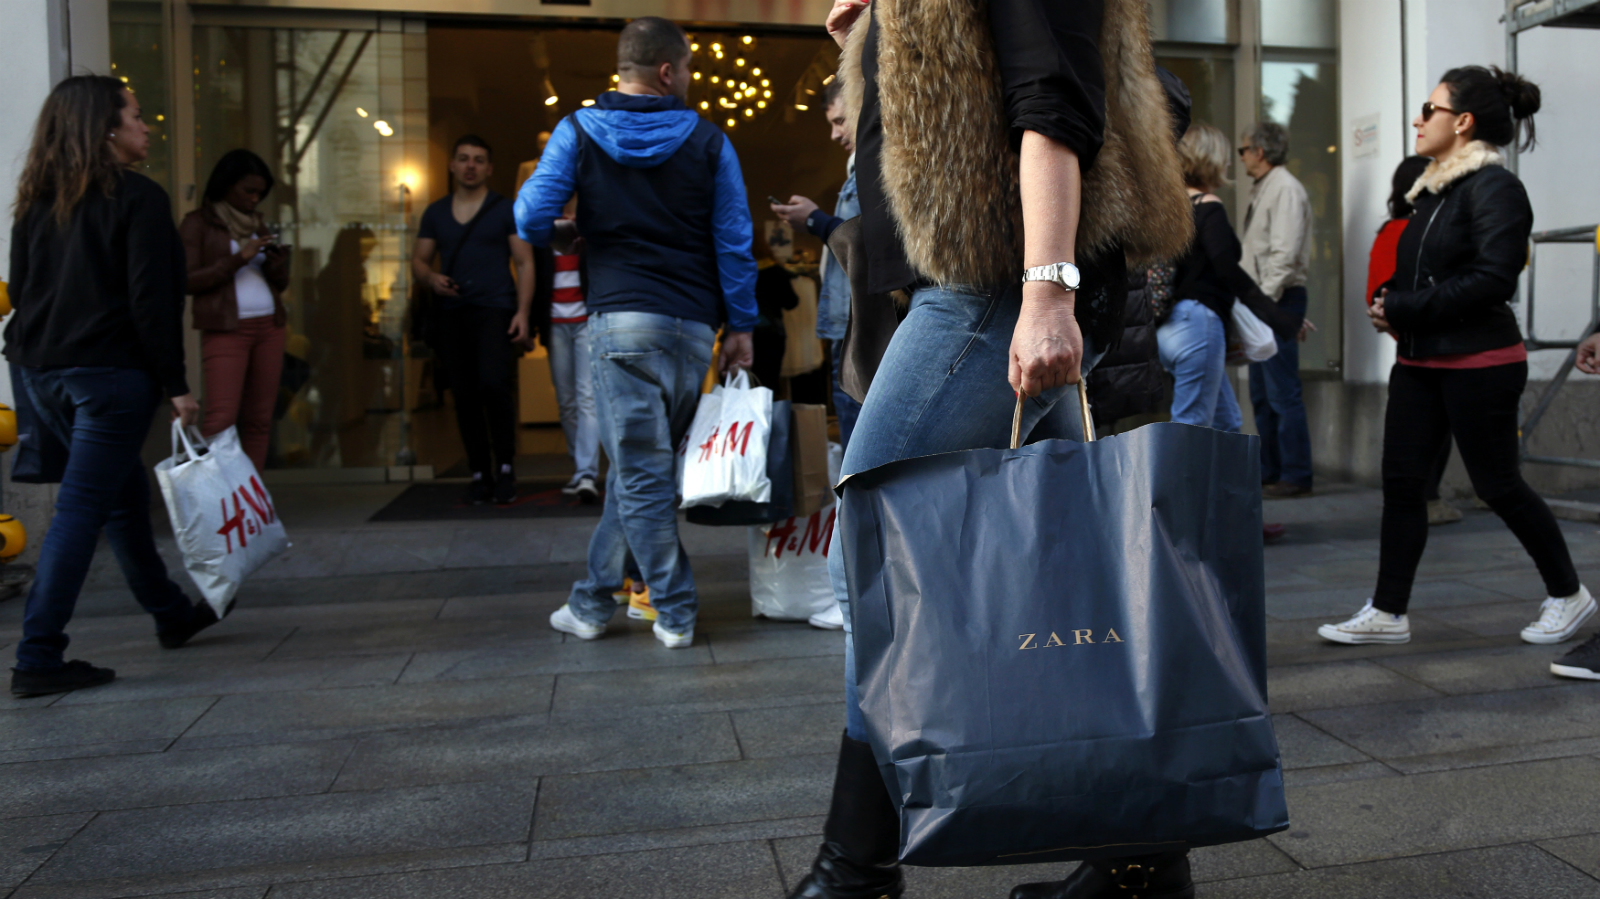 A woman carrying a Zara shopping bag walks past people holding H&M shopping bags outside an H&M store in central Madrid March 13, 2015. The families behind Zara-owner Inditex and H&M will need to fend off fast-moving competitors if they are to replicate online the winning formulae that made them the world's top two fashion retailers. Picture taken March 13, 2015.